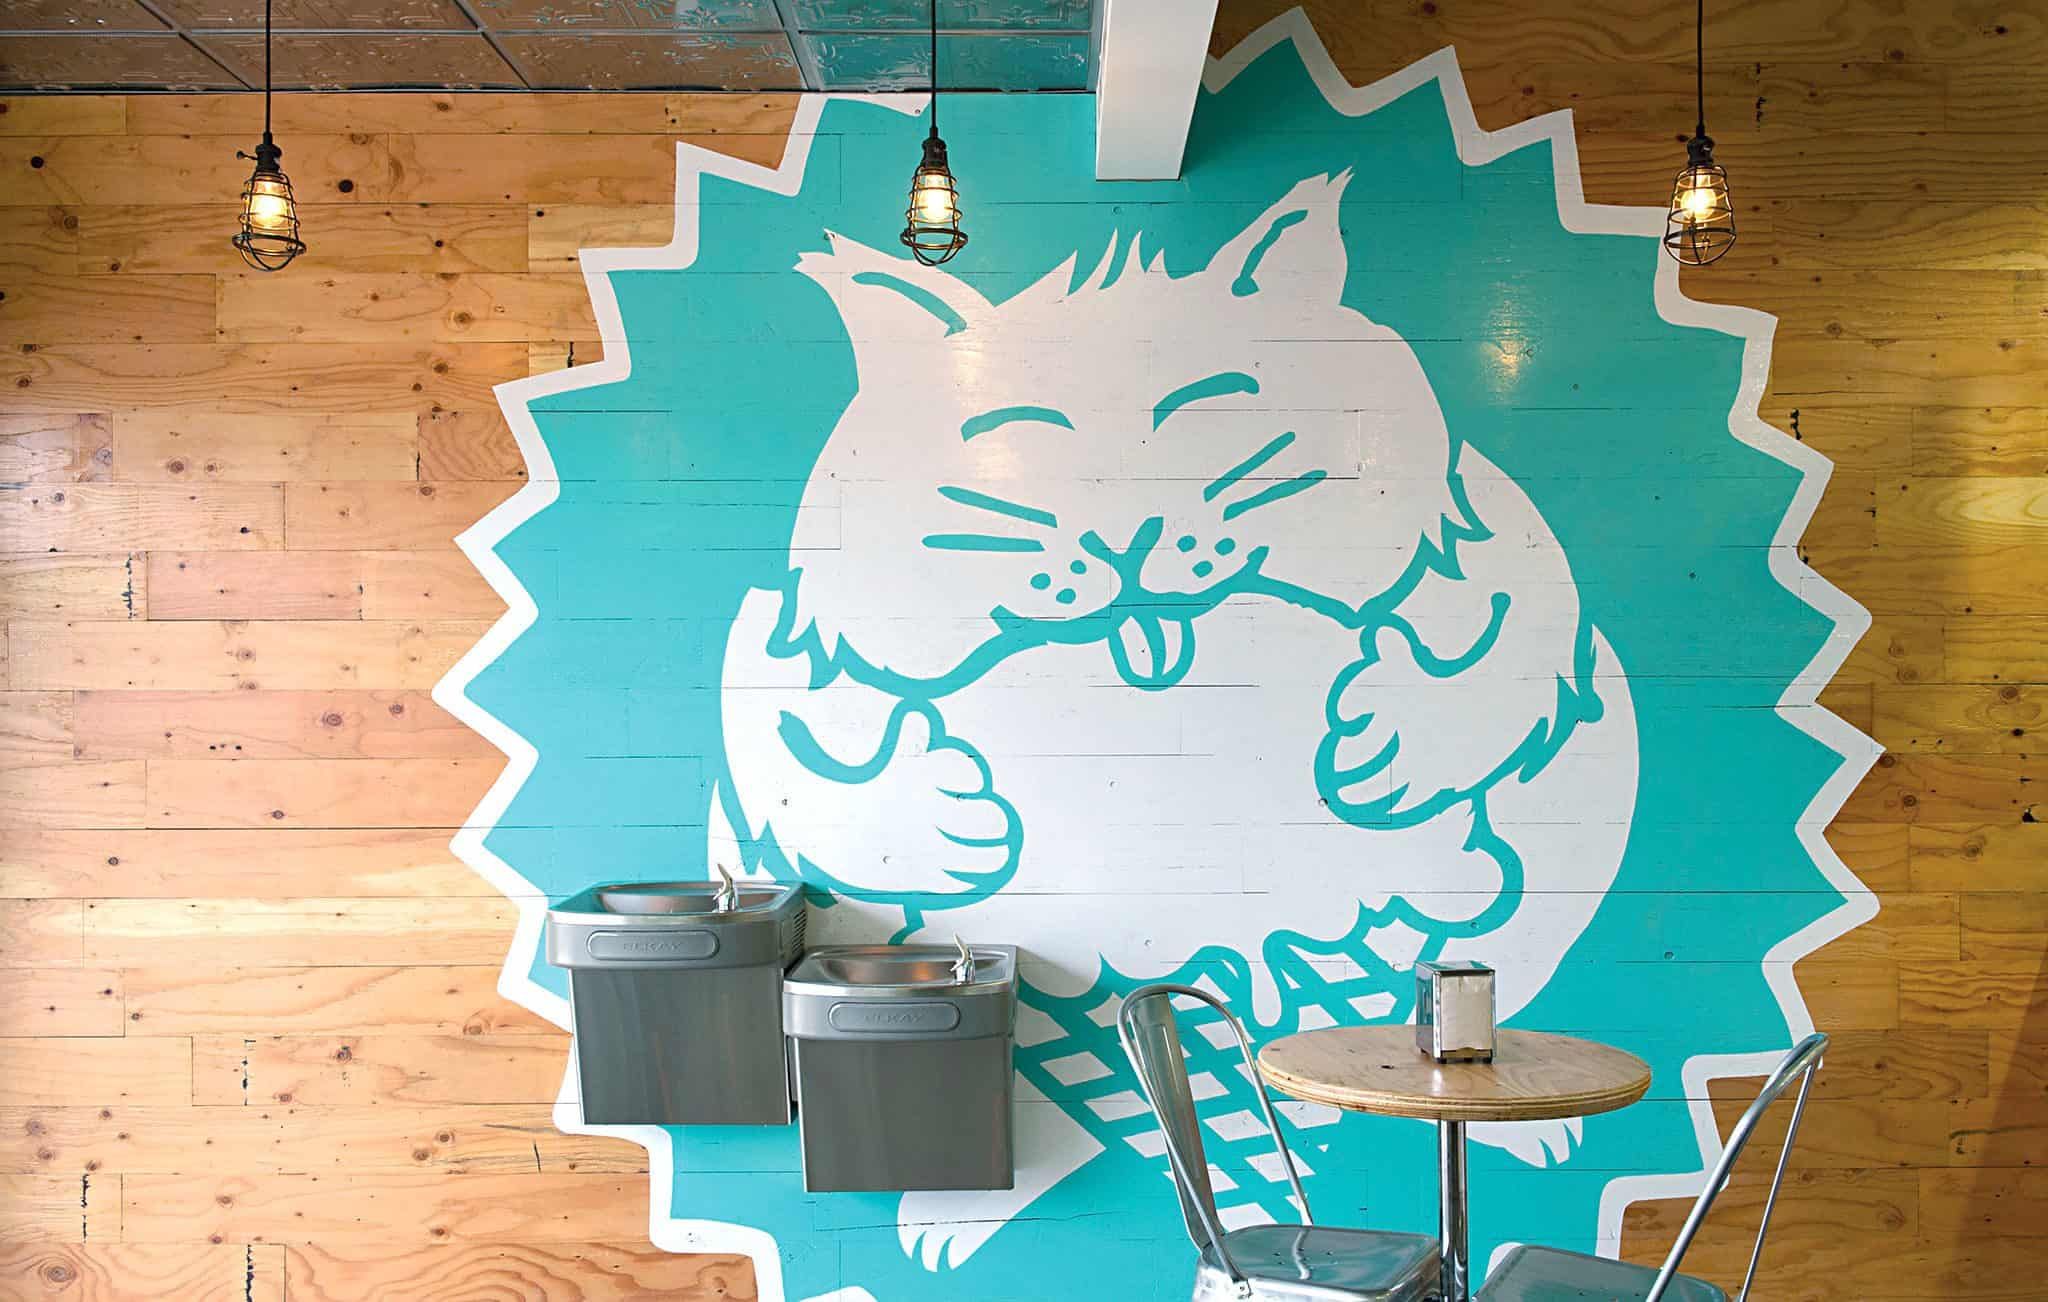 Hand painted environmental graphics for Fat Cat Creamery | Designed by Field of Study: A branding and graphic design consultancy | Houston TX | Jennifer Blanco & John Earles